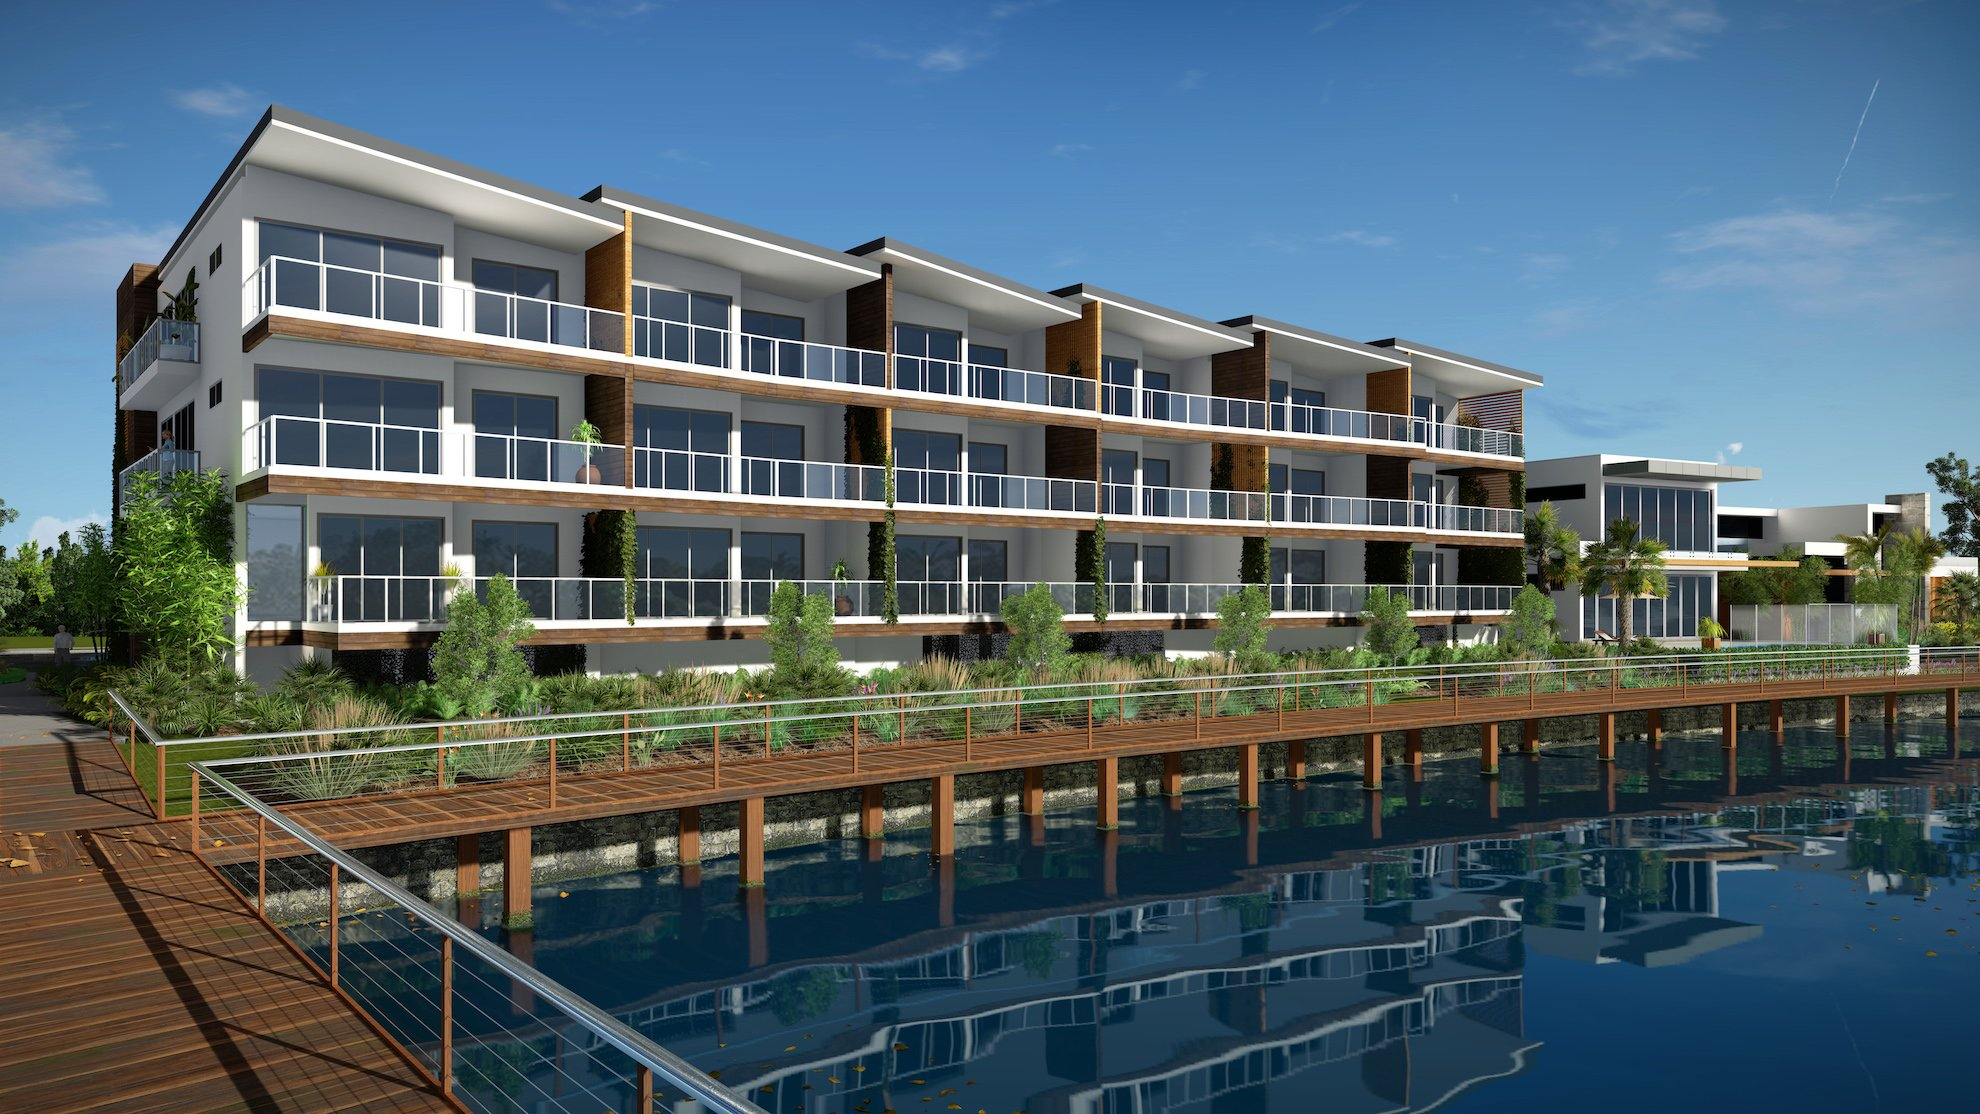 SUNSHINE COVE river project by mdesign, a building design practice that operates on the Sunshine Coast.